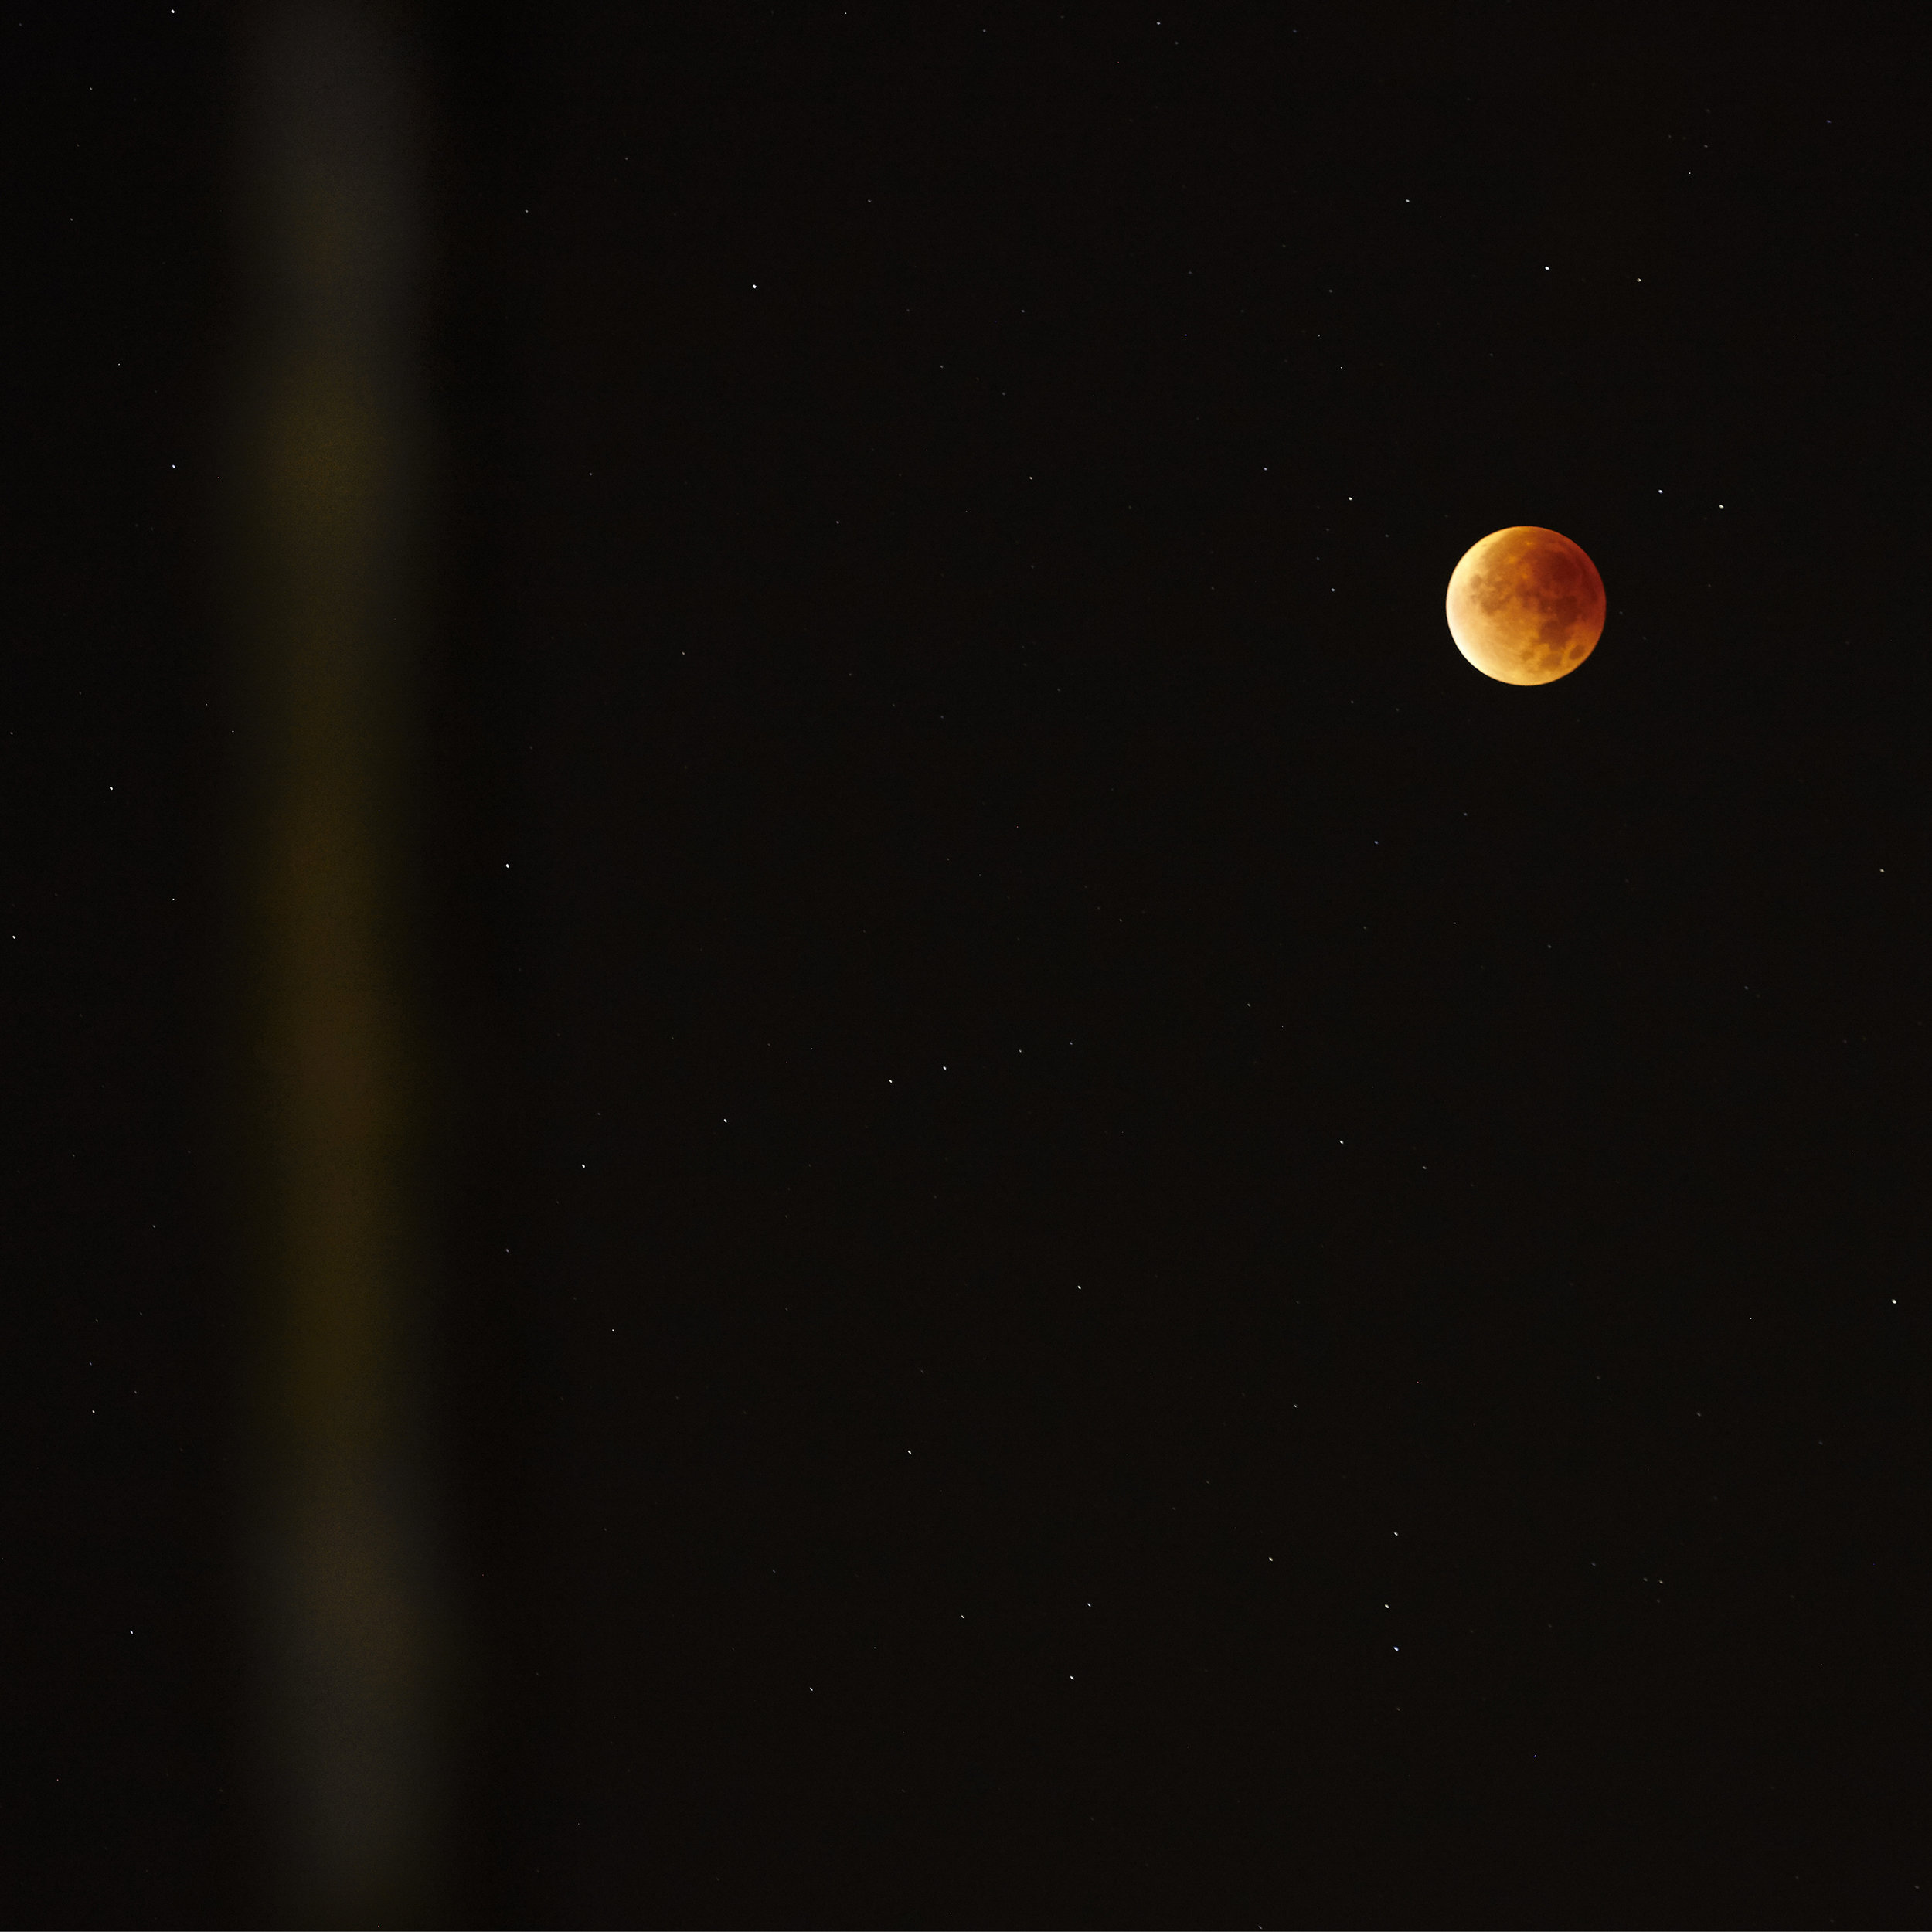 Blood moon, 2015, lambda on dibond in black frame, edition 1/5 + 1 AP